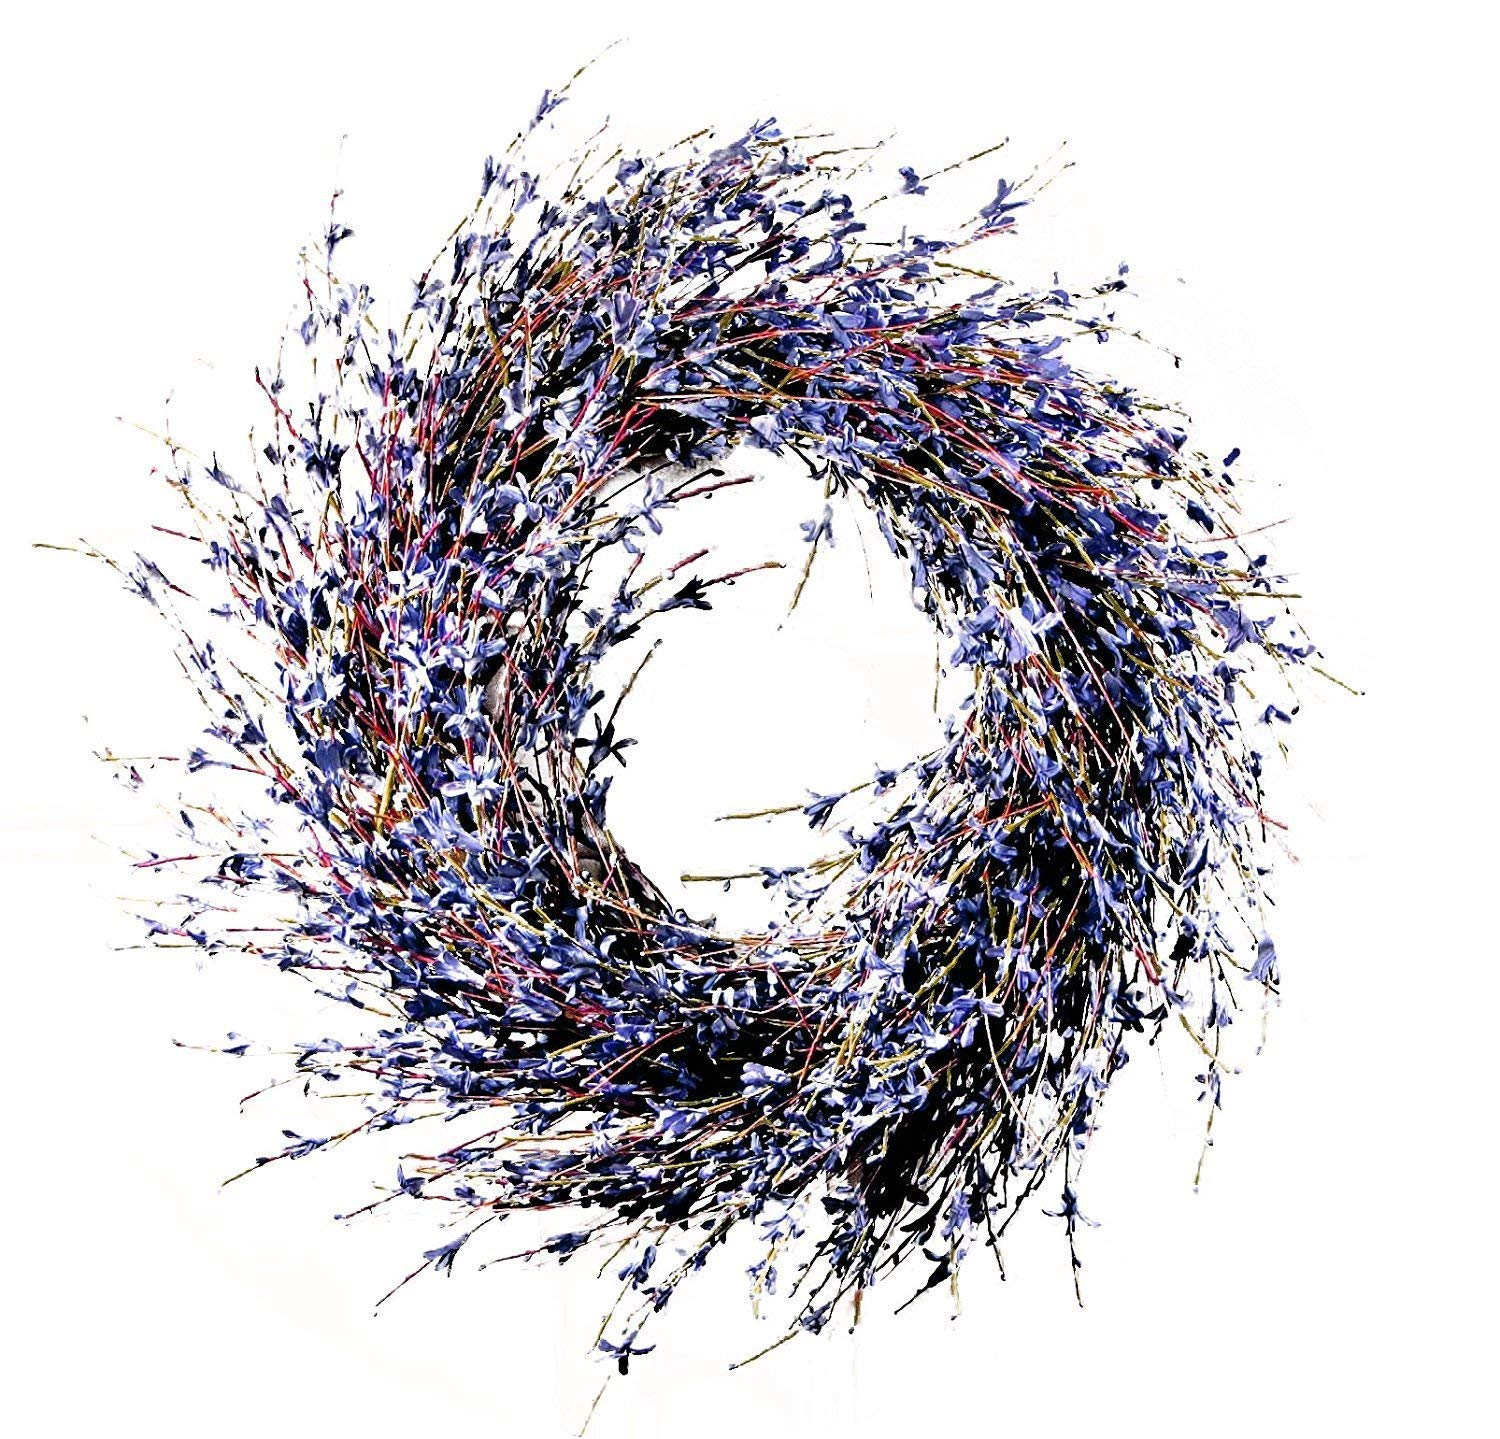 """Charm & Chic Faux Dried Lavender Floral Door Wreath Natural for Fall Front Door or Indoor Home Decor - ✿ DESIGN Handcrafted elegantly with Lavender and fall foliage on a thick natural grapevine wreath base.  ✿ USEThis is a gorgeous, high-quality door wreath that will bring style and charm to the front of your home. Perfect for the holidays, this lavender wreath is versatile enough to welcome guests to your home for any occasion. In fact, you may even want to keep it hanging year round! It is small enough not to overwhelm your door, yet it never fails to catch your attention with its grace. ✿ MEASUREDimensions: 19.7"""" W x 2""""D x 19.7"""" H Weight: Approximately 2 lbs. Use: Indoor and outdoor use. Perfect as home accent around the holidays or any time. Material: Paper, twigs Includes: Wreath with artificial lavender-like flowers - living-room-decor, living-room, home-decor - 814kjEik8NL -"""